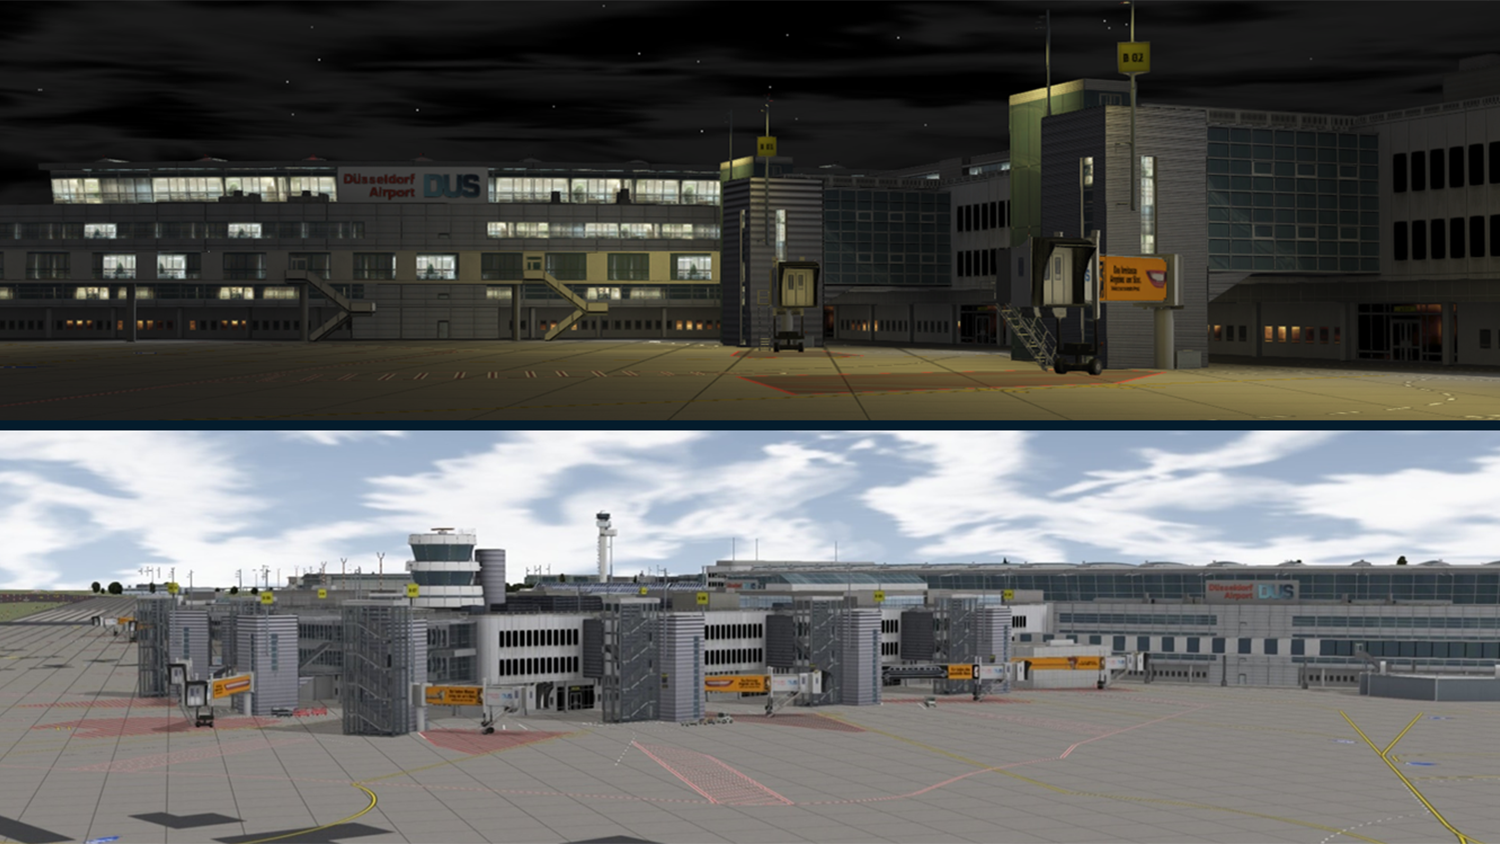 Day and night time at Dusseldorf Airport in the simulated training environment for ARFF and airport workers.